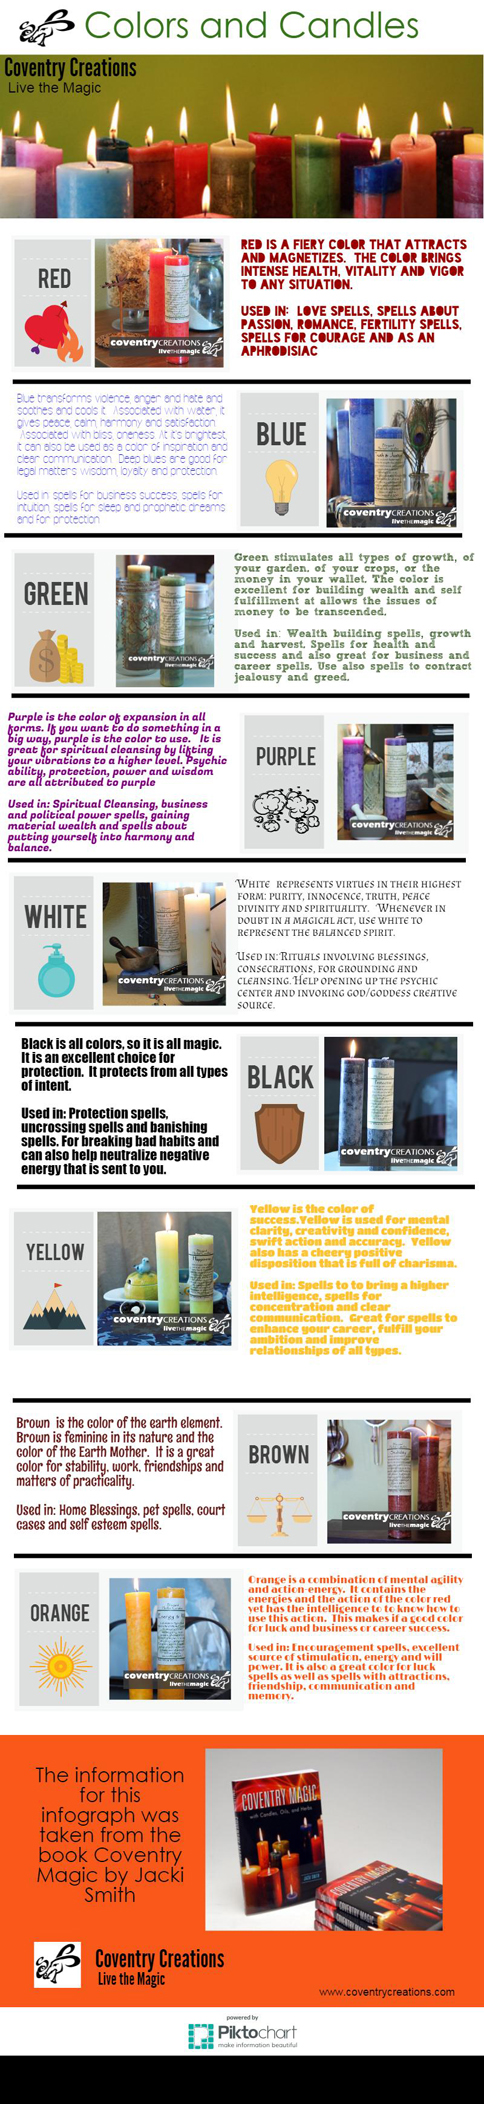 What the colors mean for candle magic.